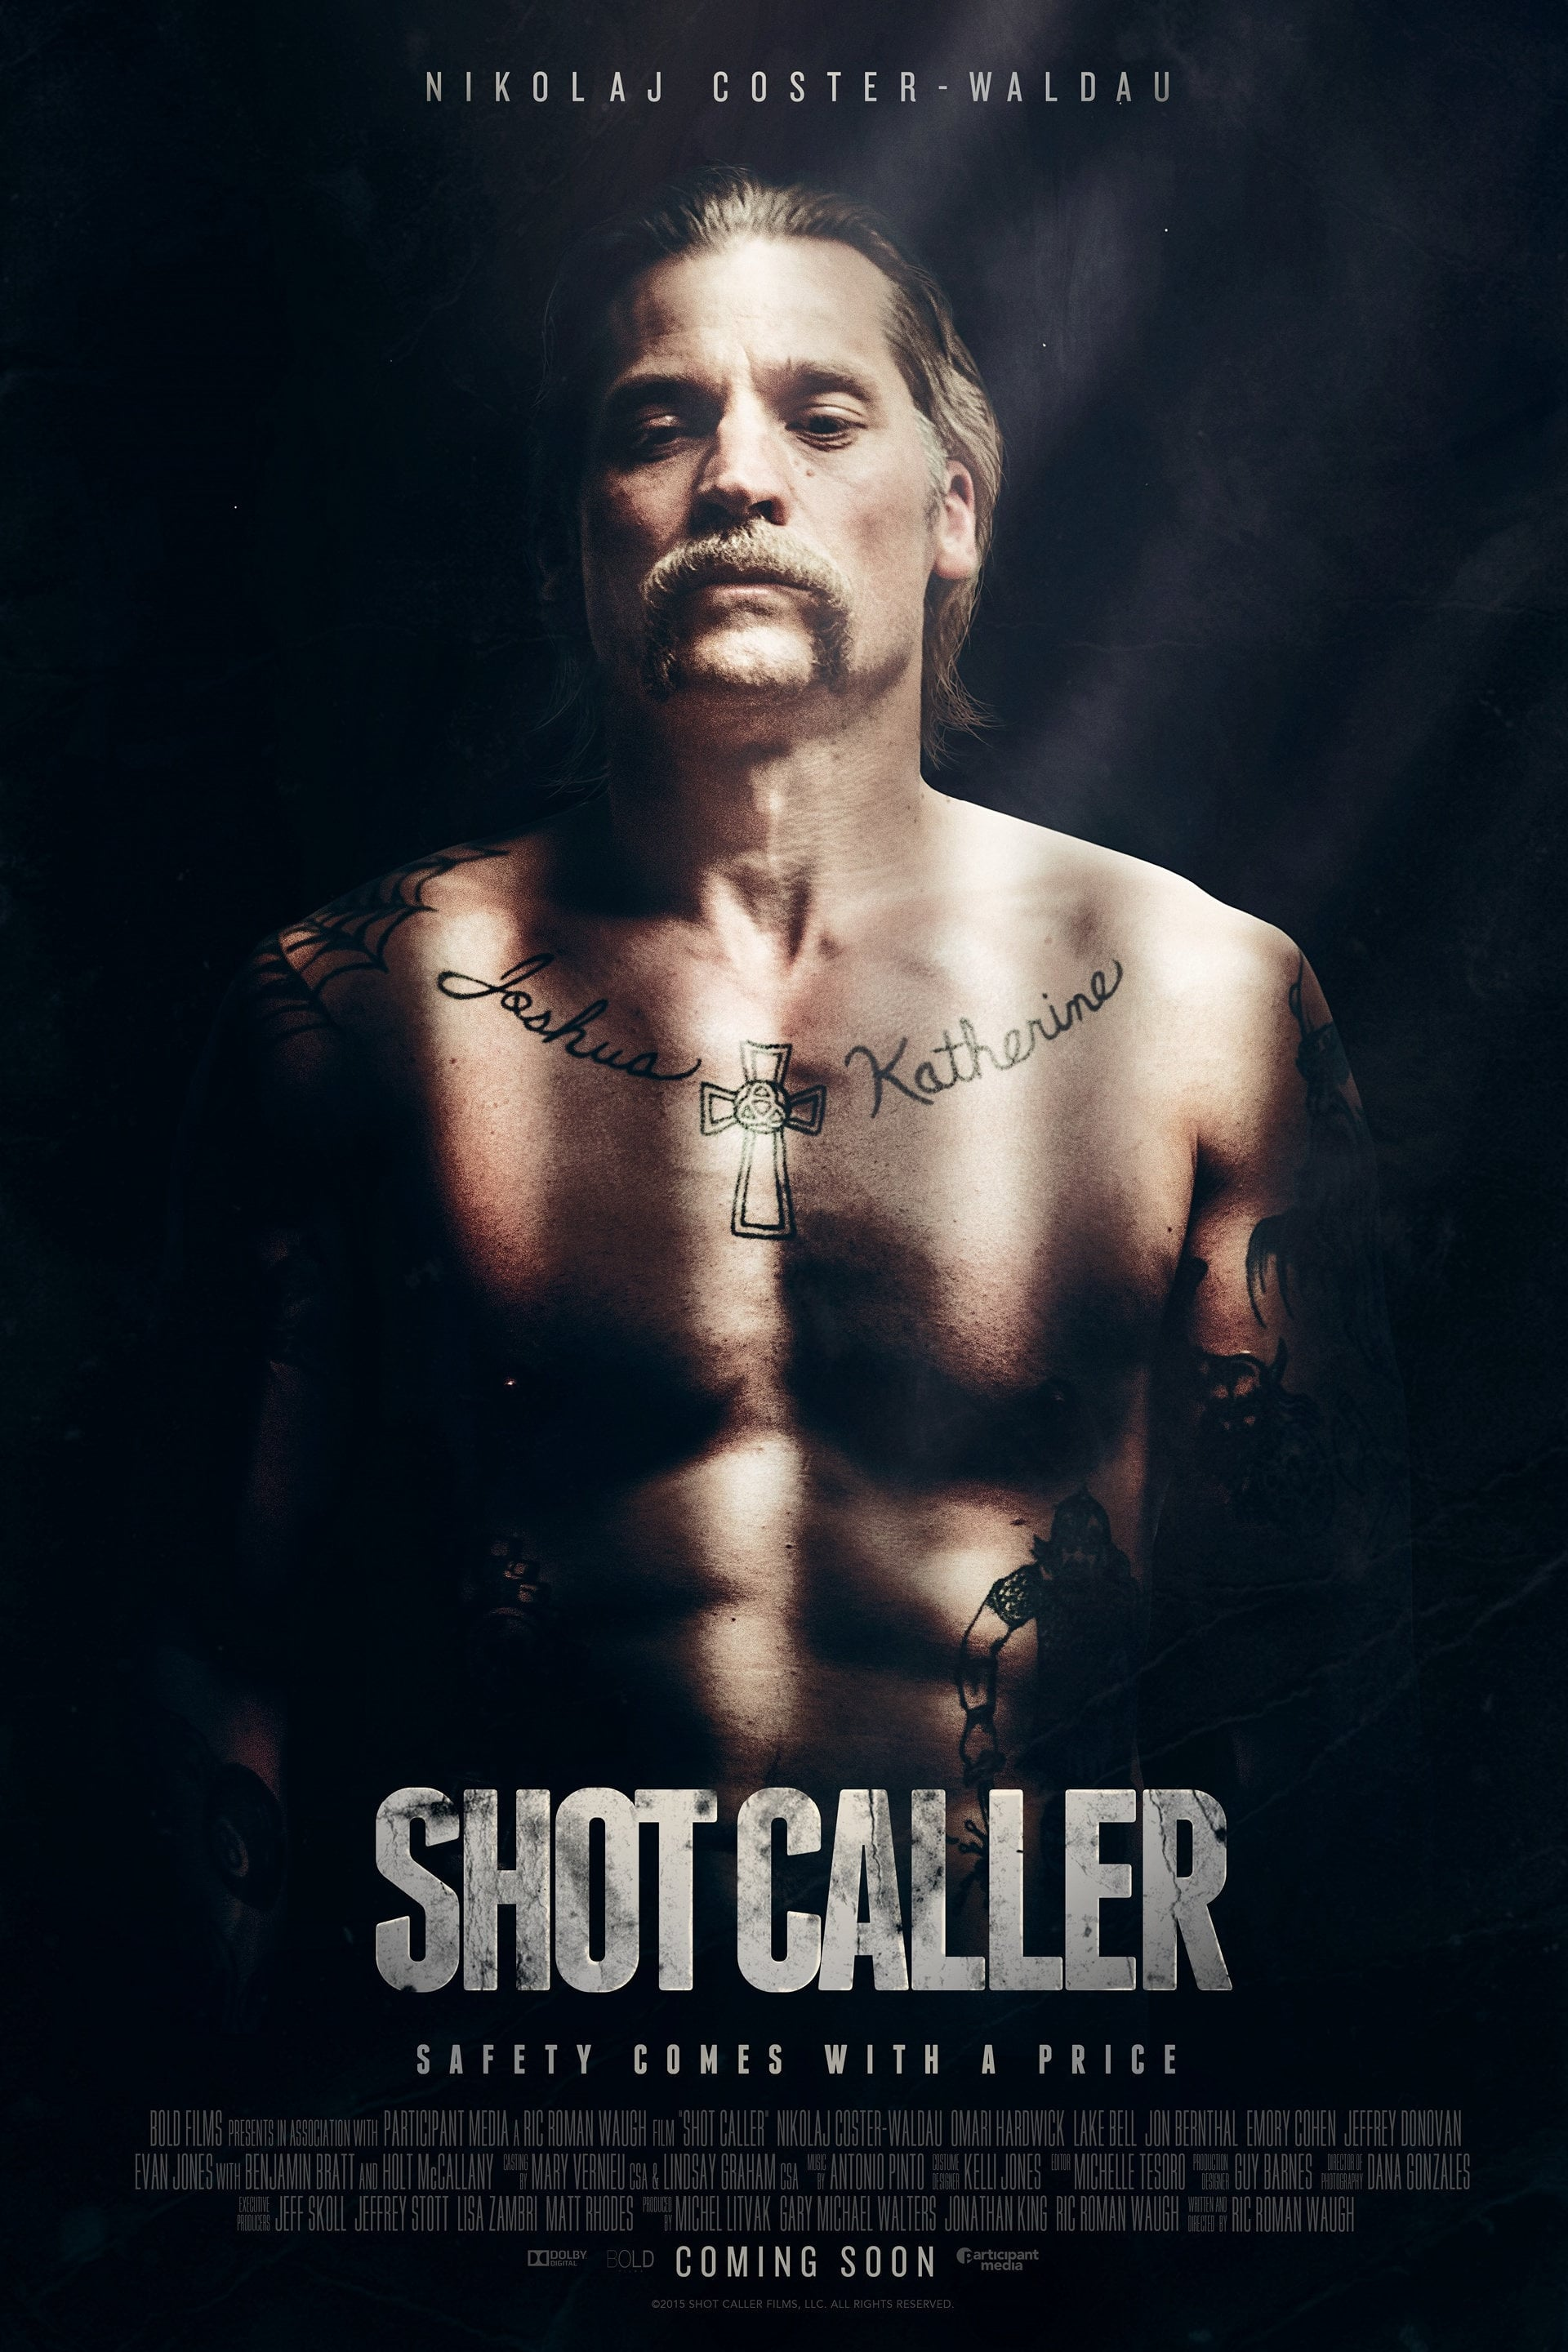 image for Shot Caller